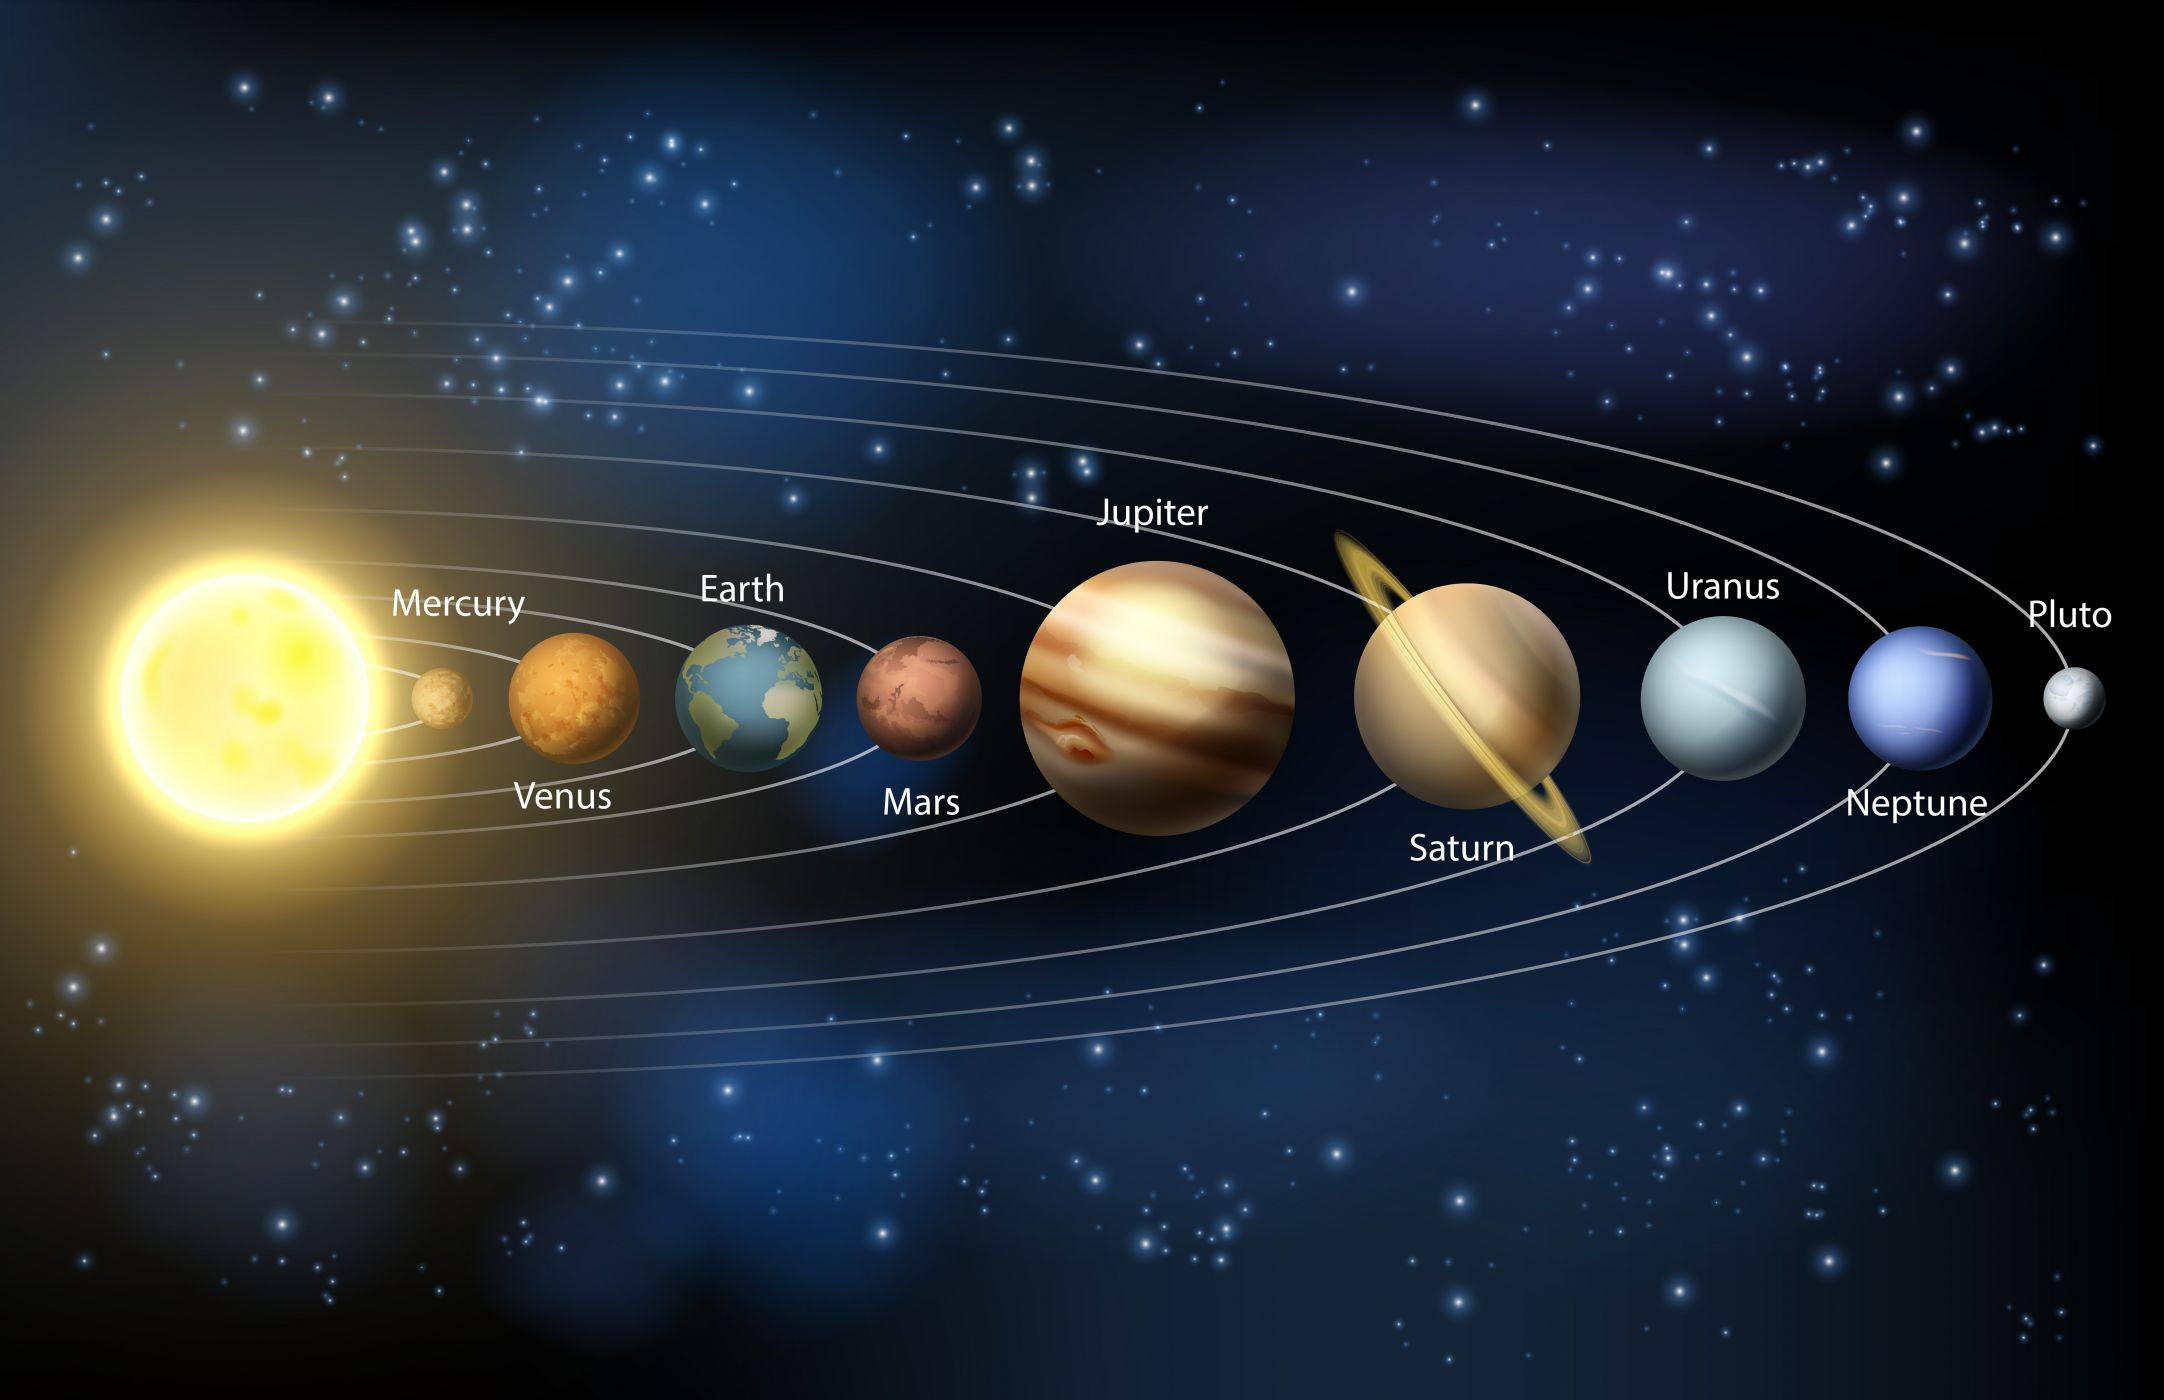 outer planets of the solar system - HD2164×1400